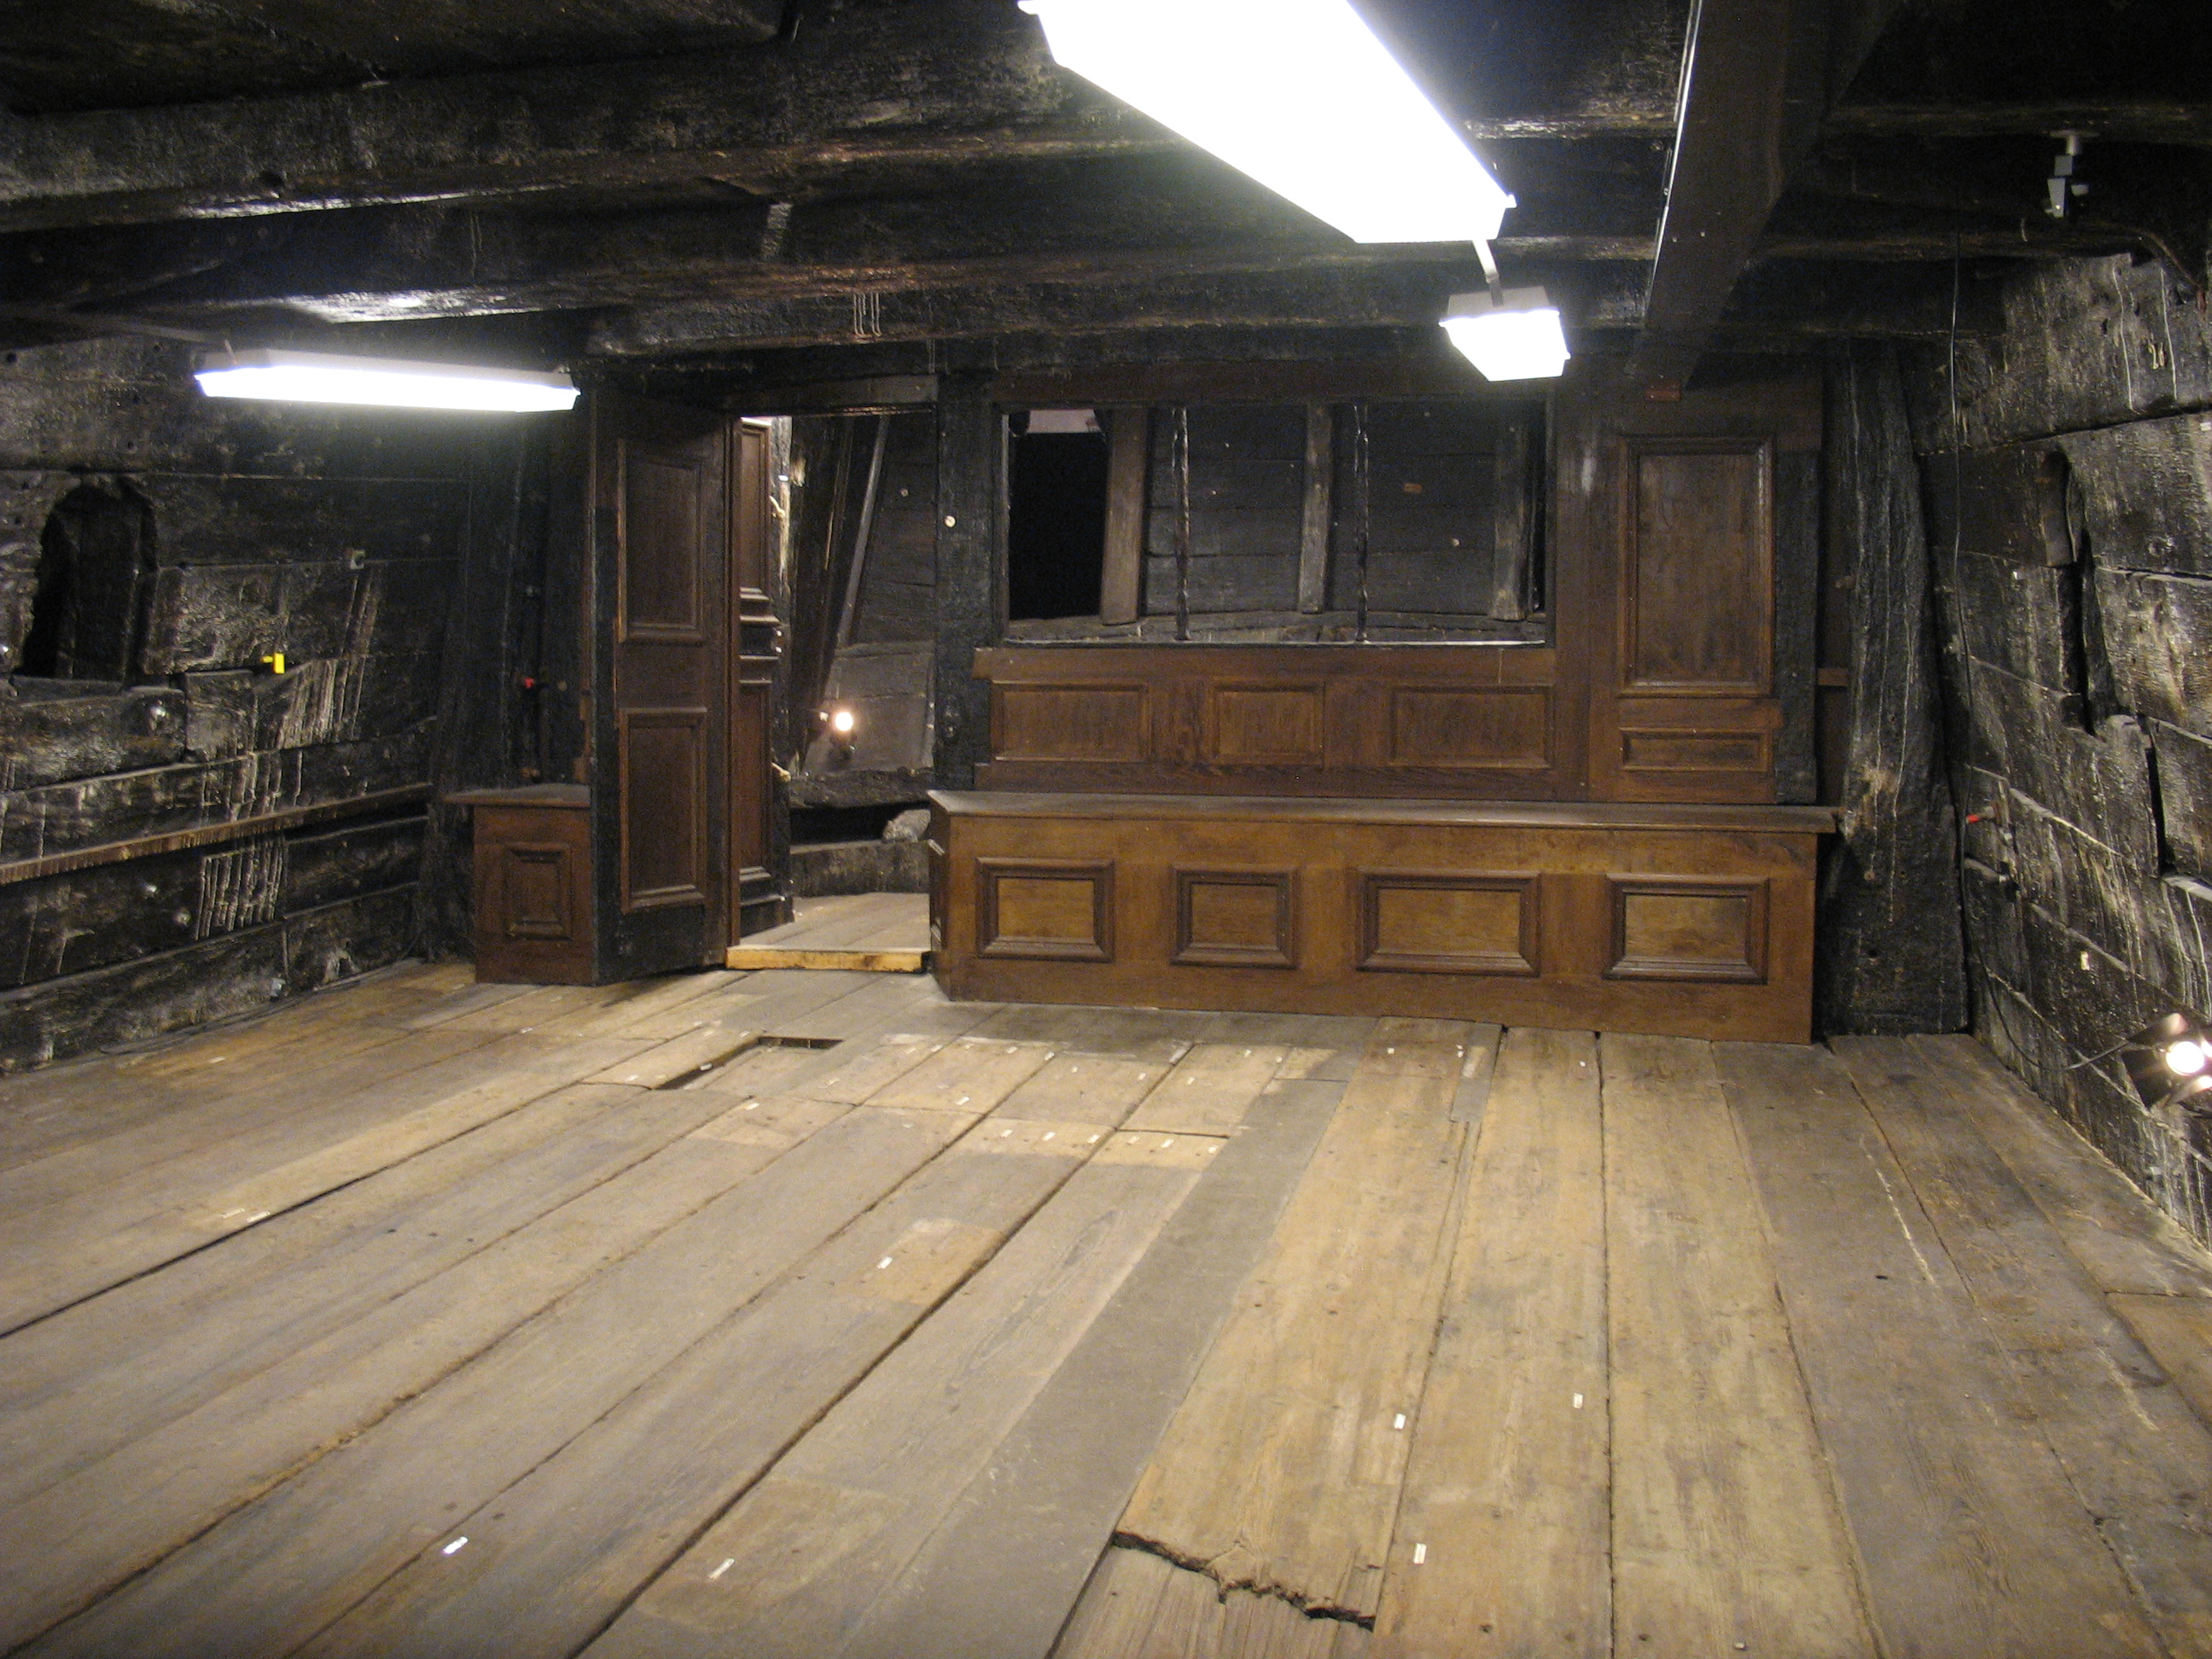 pictures of ships cabins - photo #10